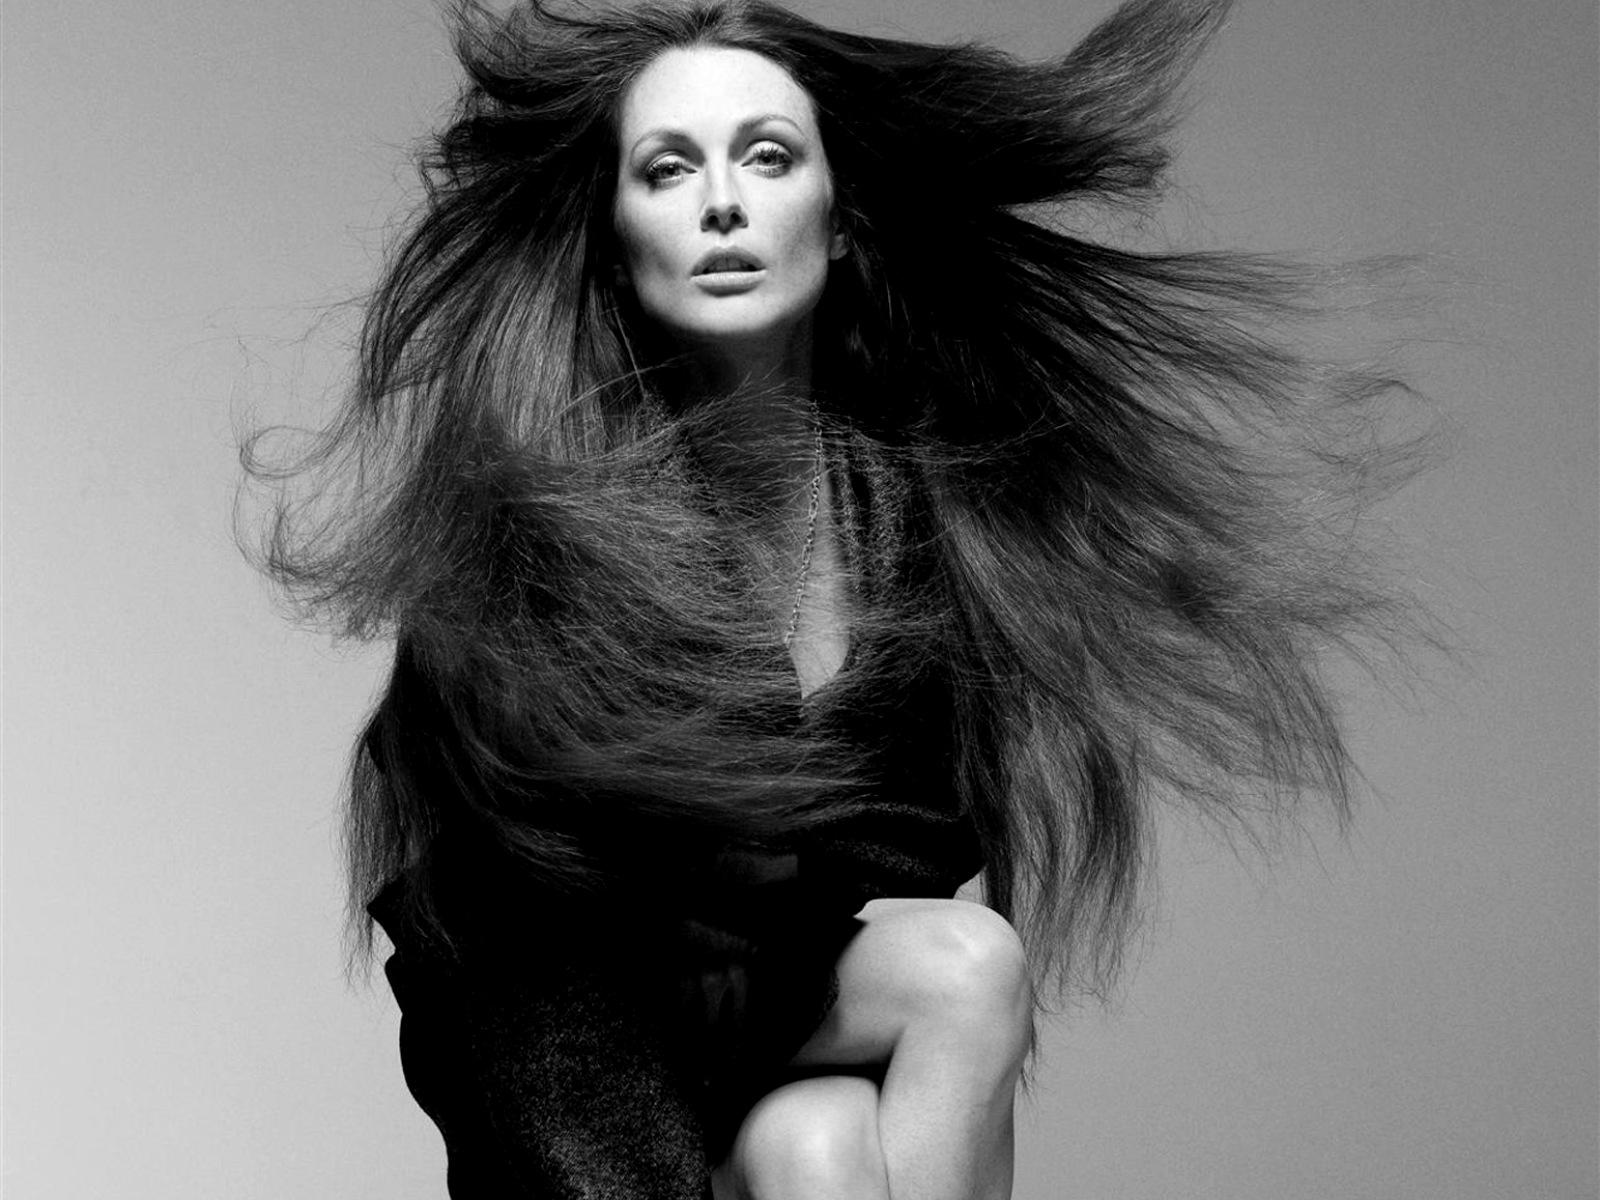 julianne moore makeup